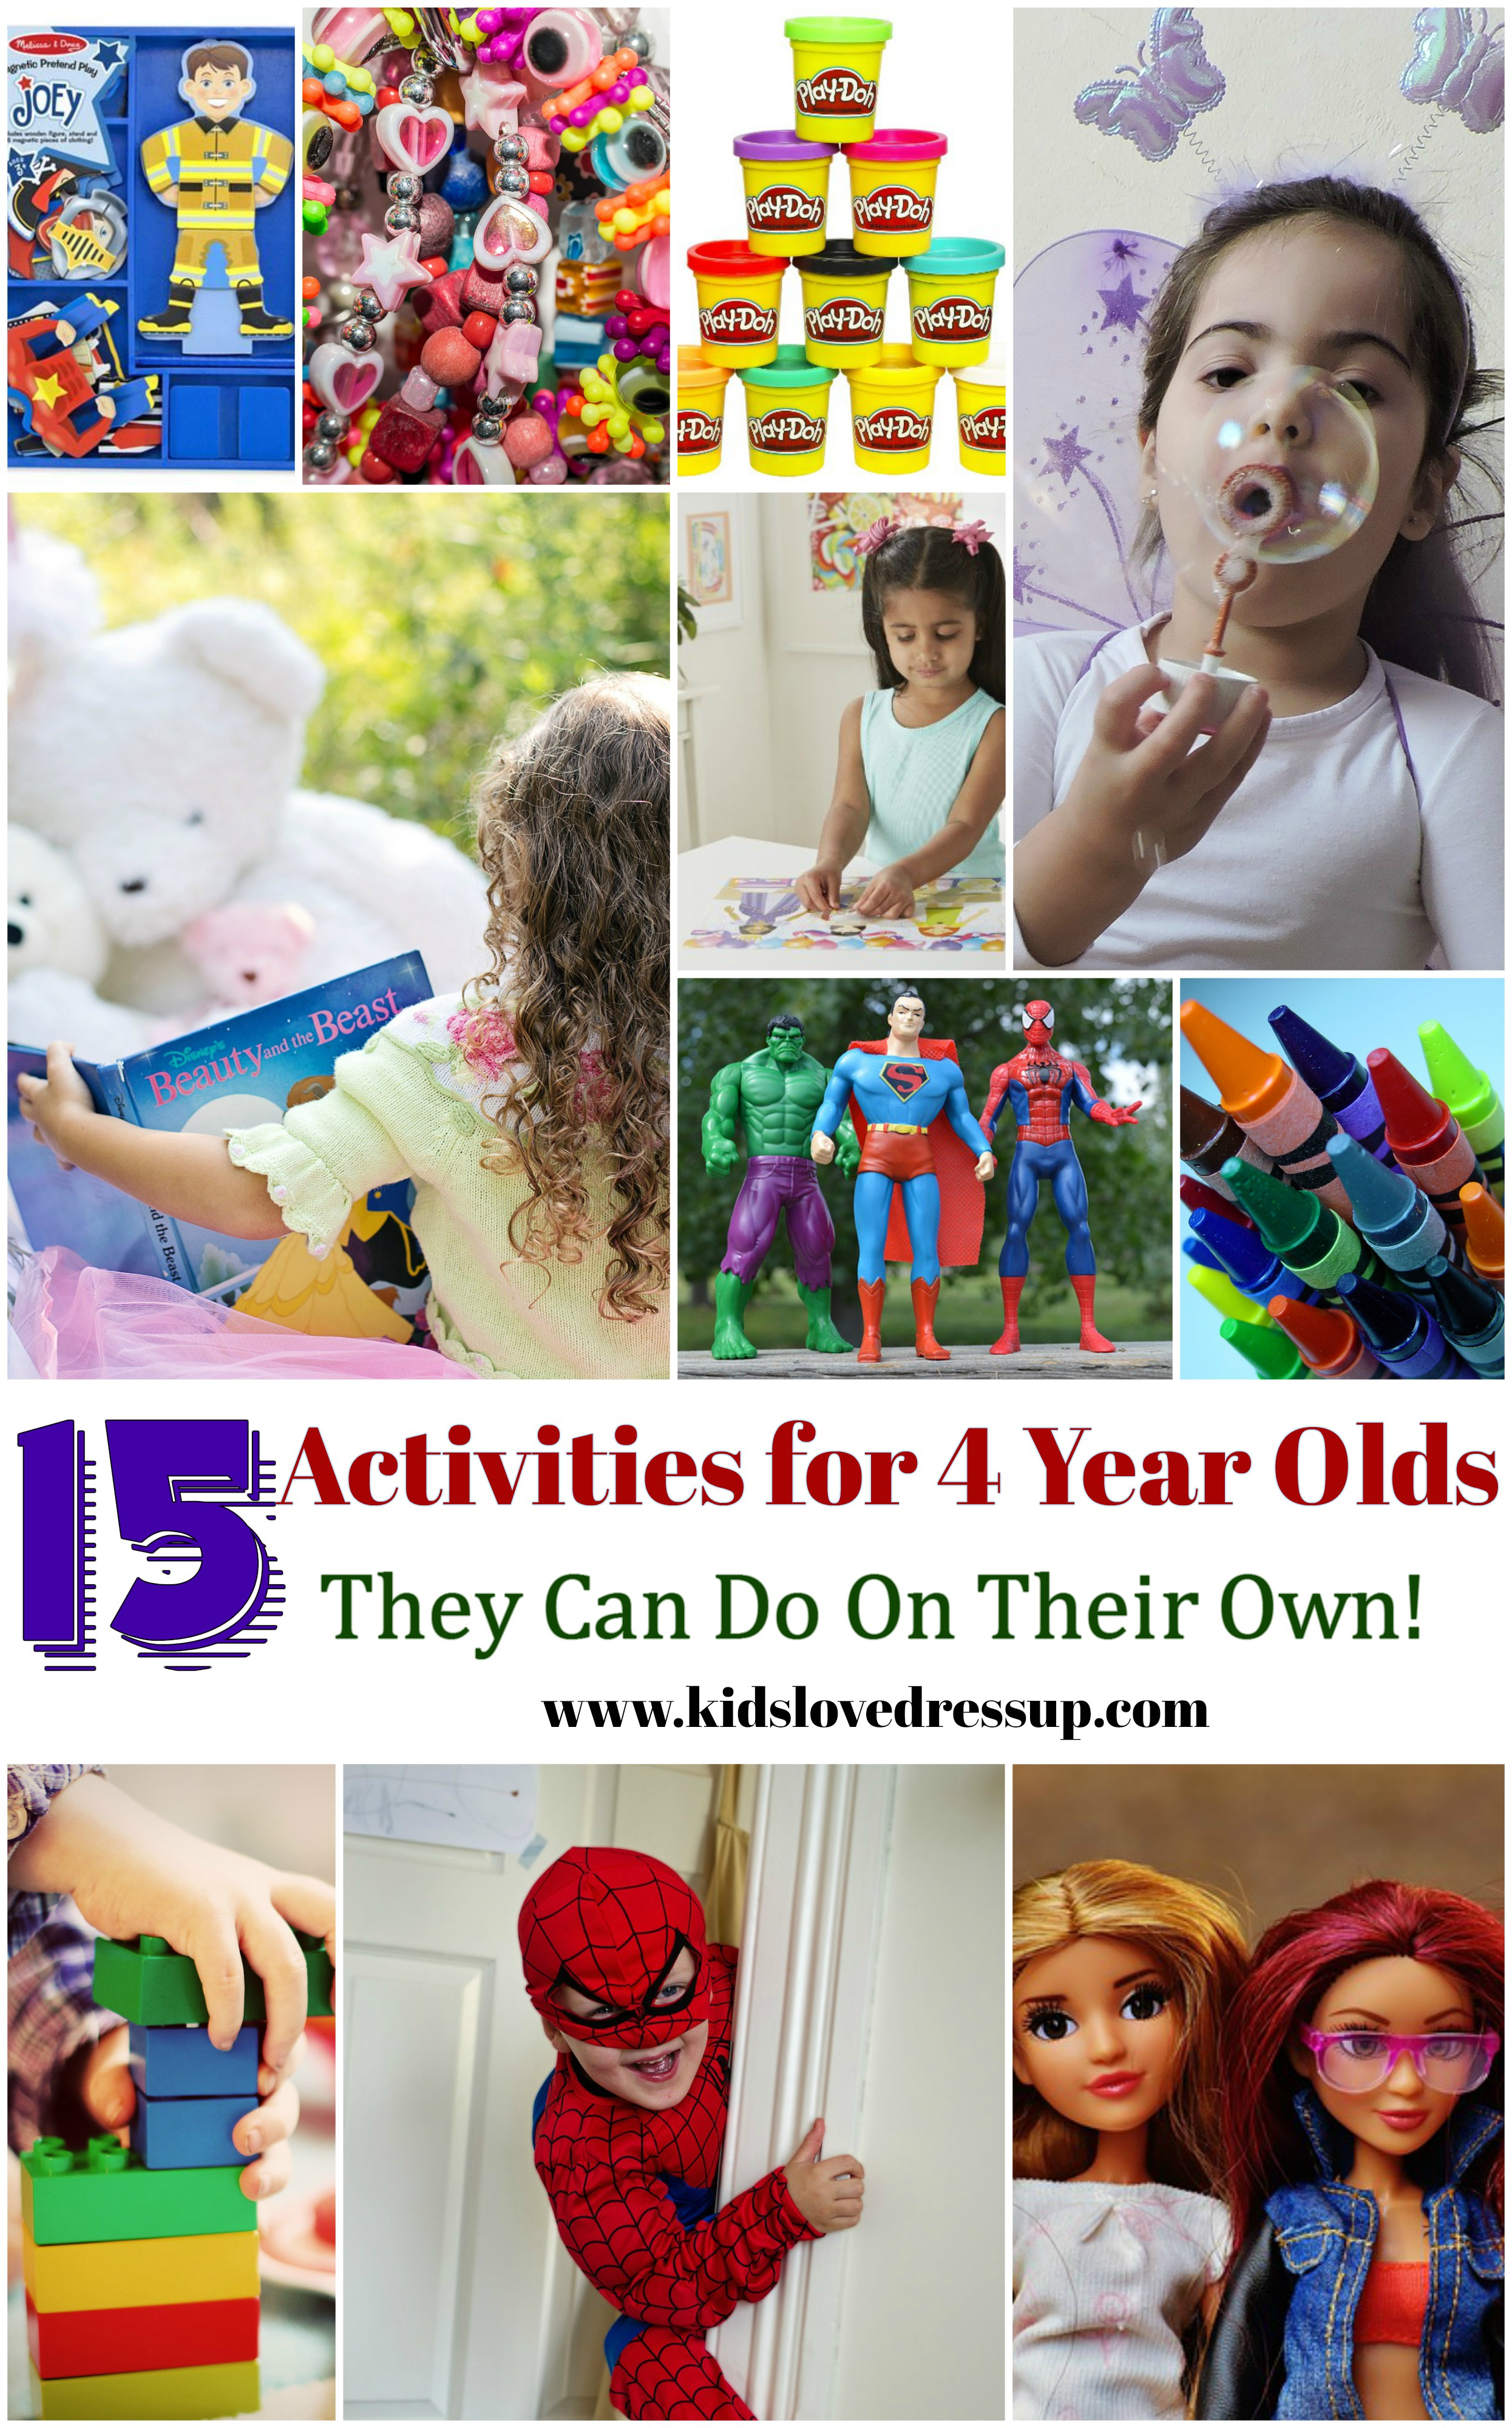 15 Activities for 4 Year Olds They Can Do On Their Own! Check out this post at www.kidslovedressup.com for great ideas to keep your kids busy!